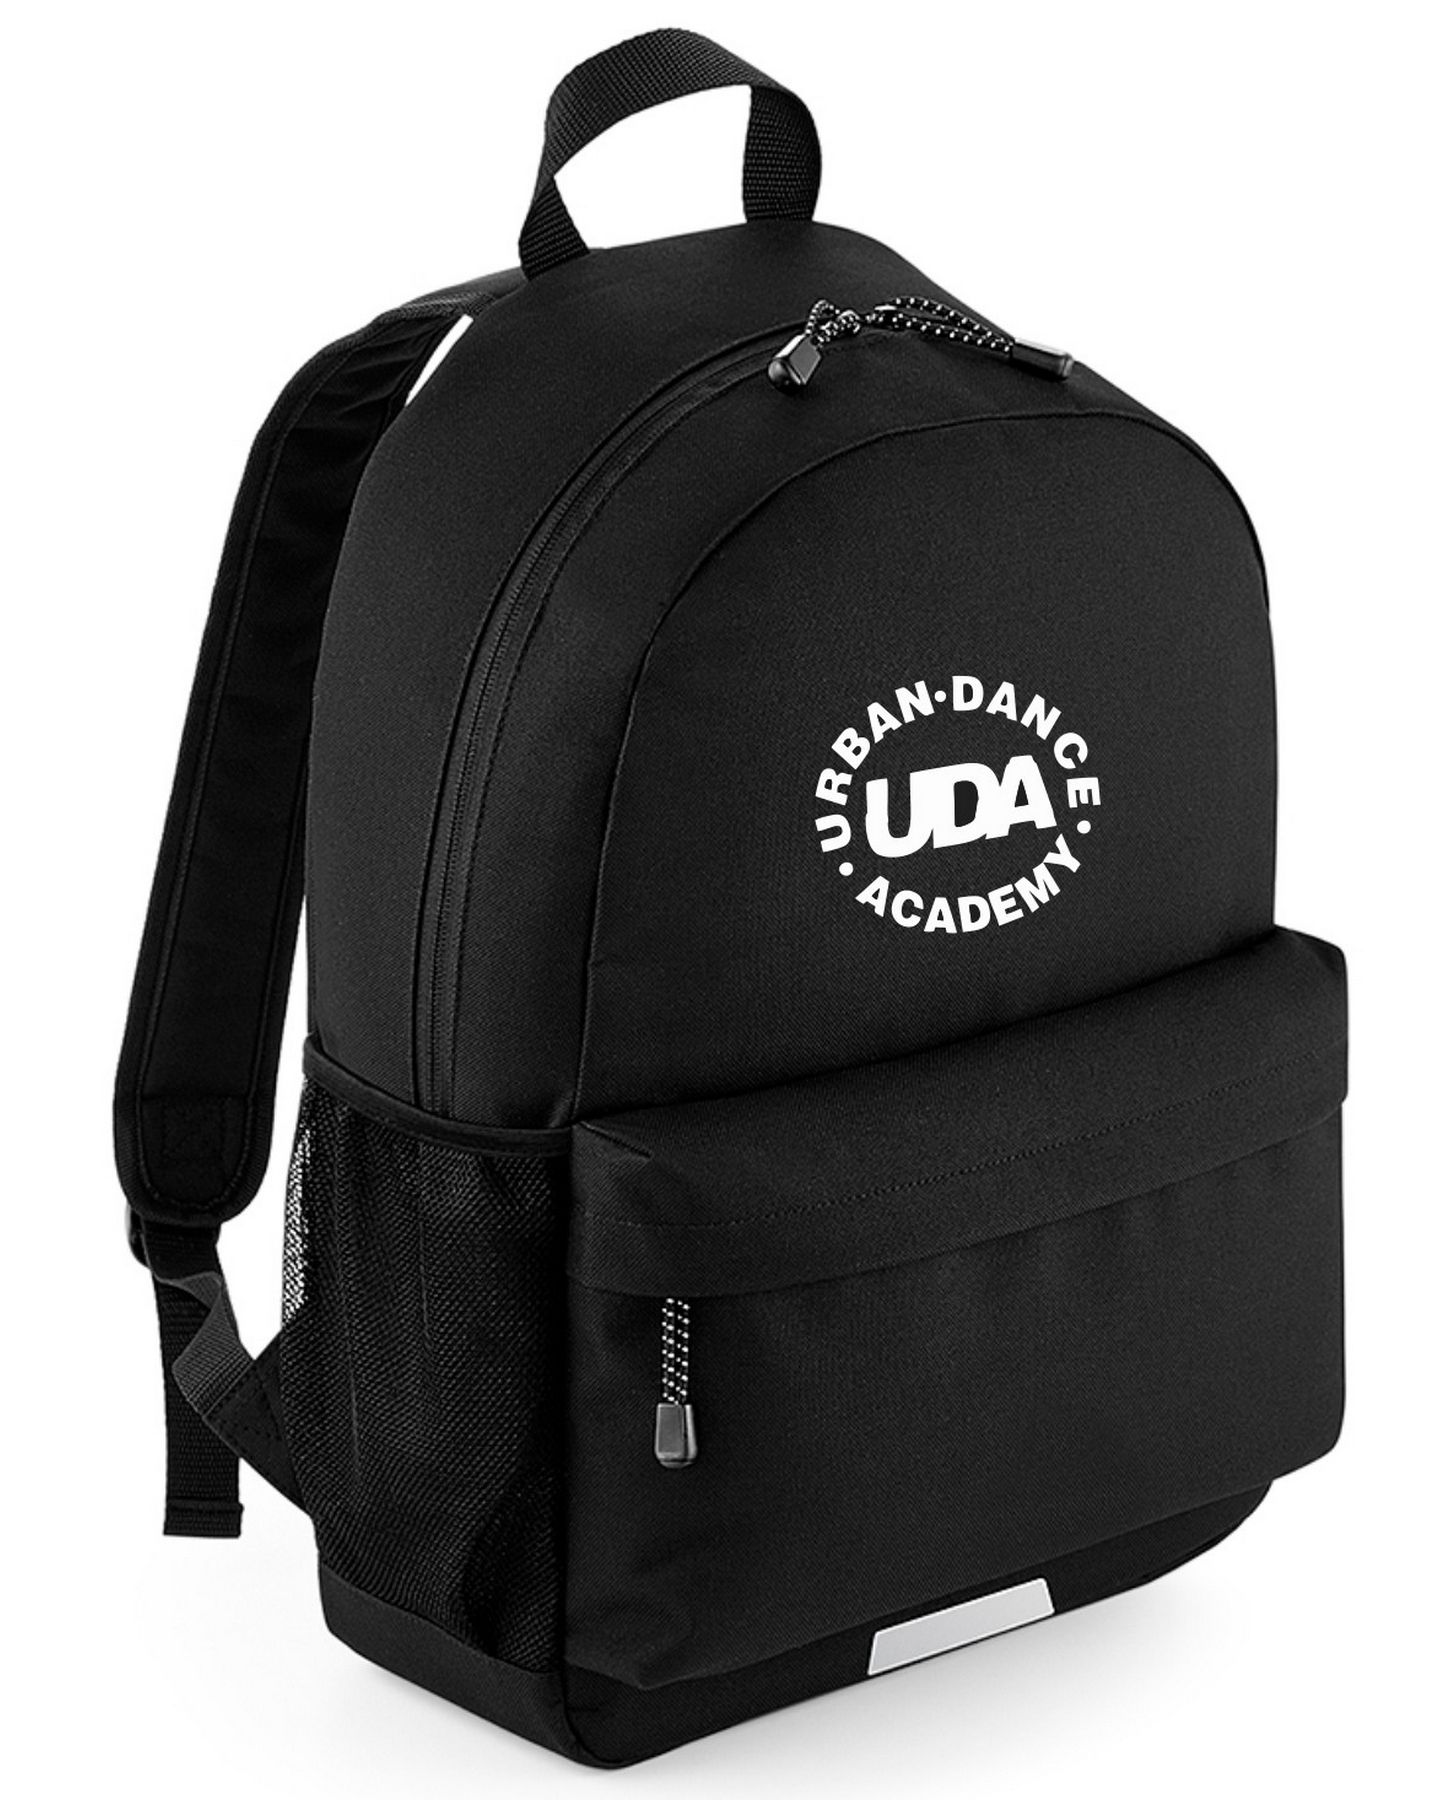 UDA – Backpack (Black)